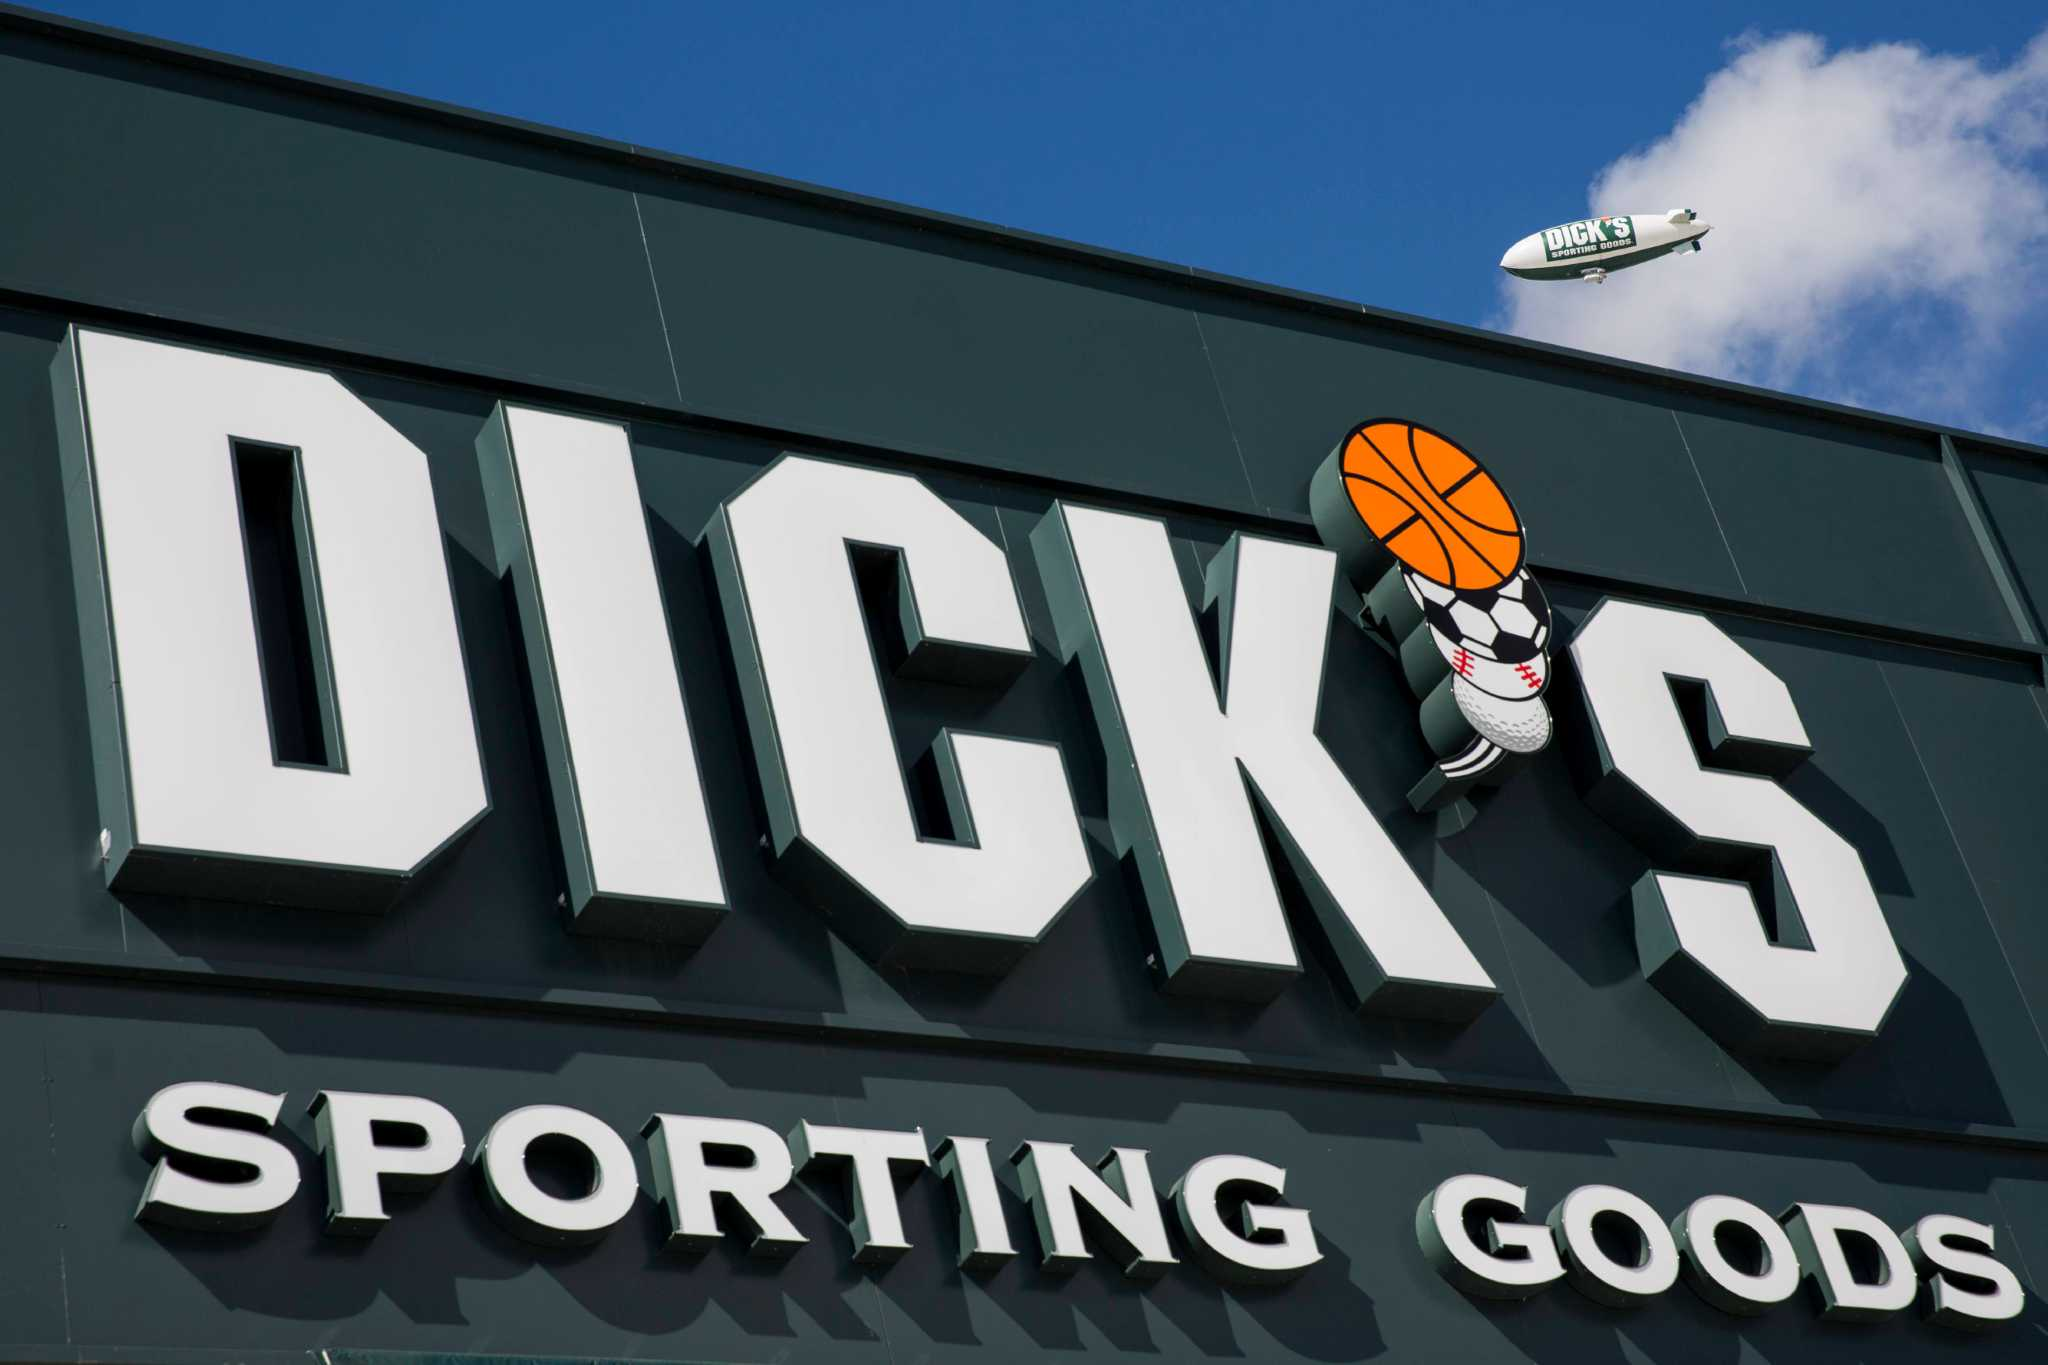 Dick's sporting goods stores opening in august